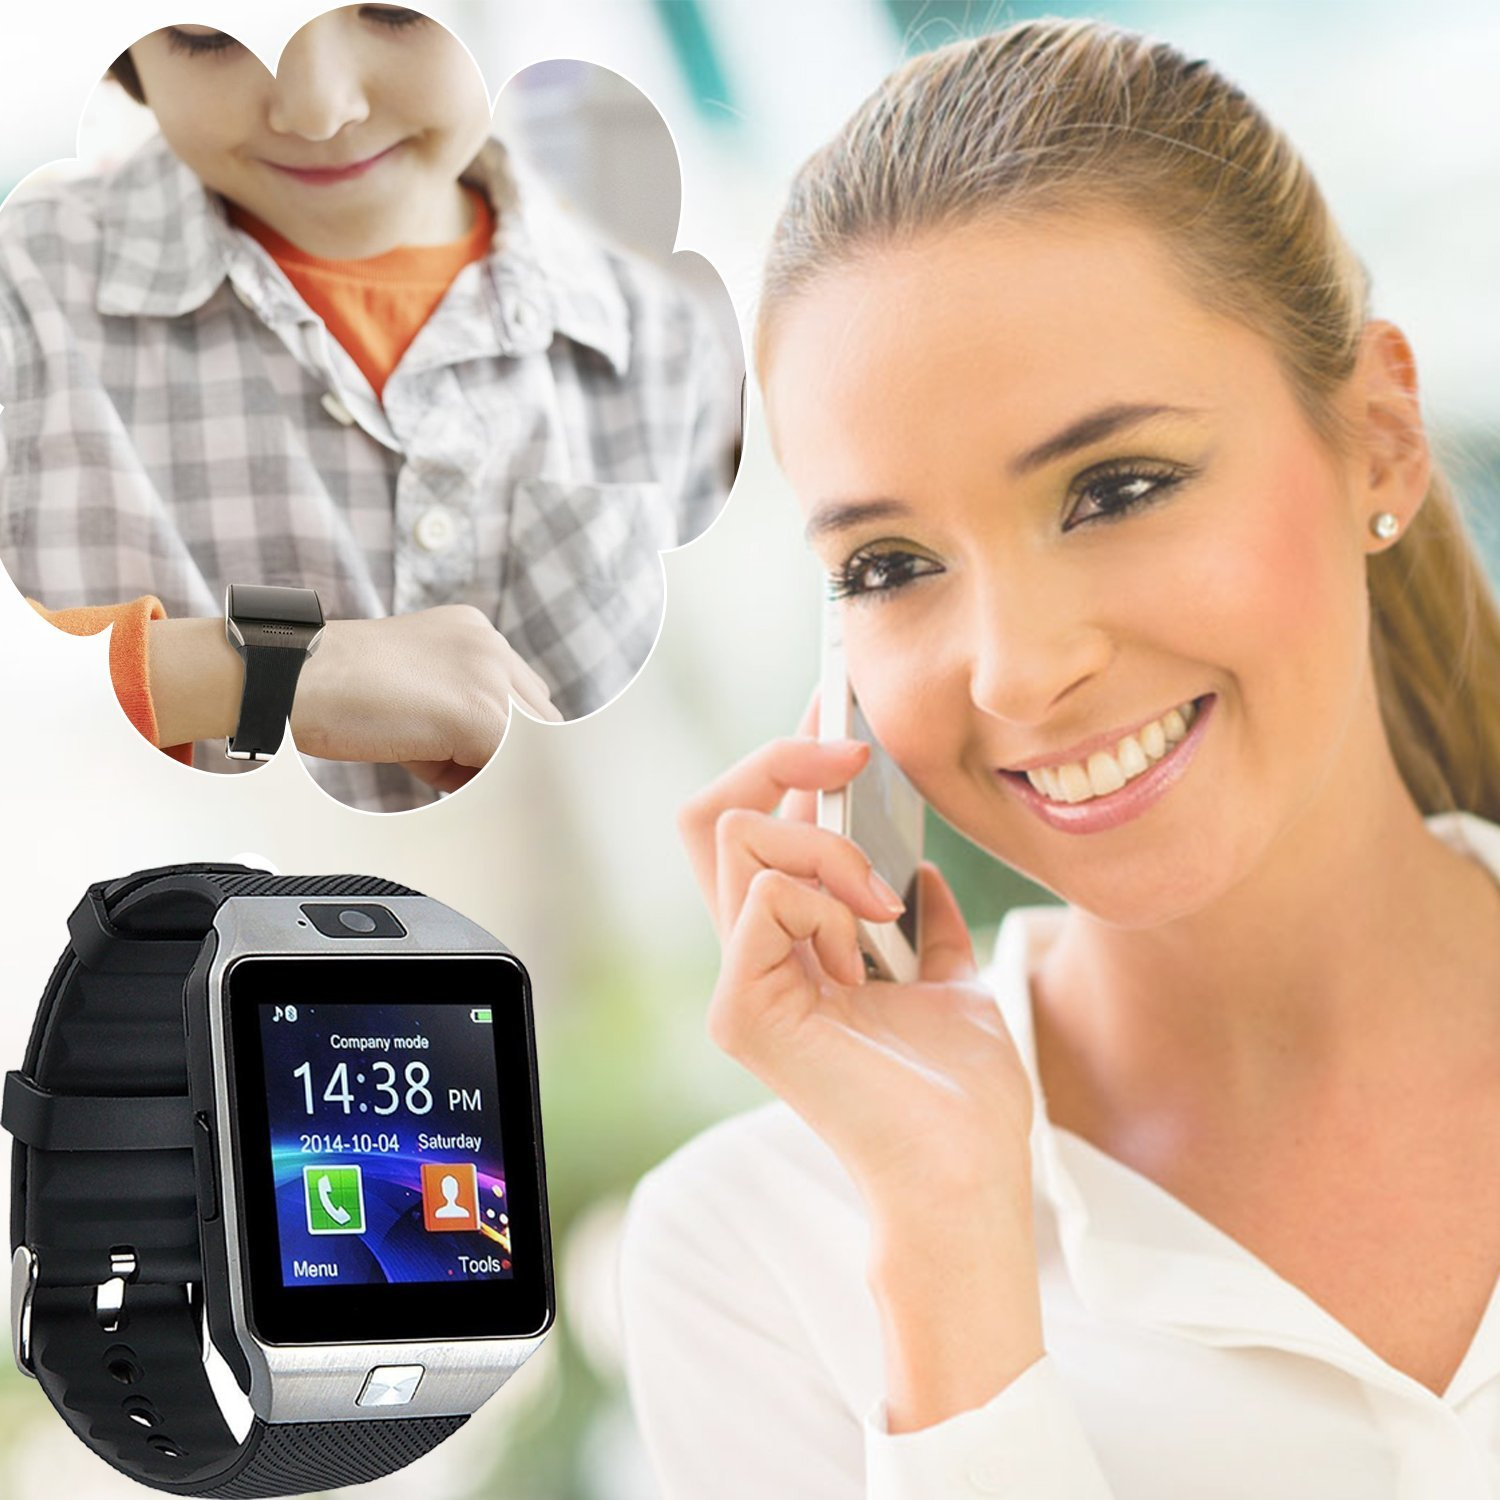 71OGwGaSPL. SL1500  - Smart Watch DZ09 For Android Devices